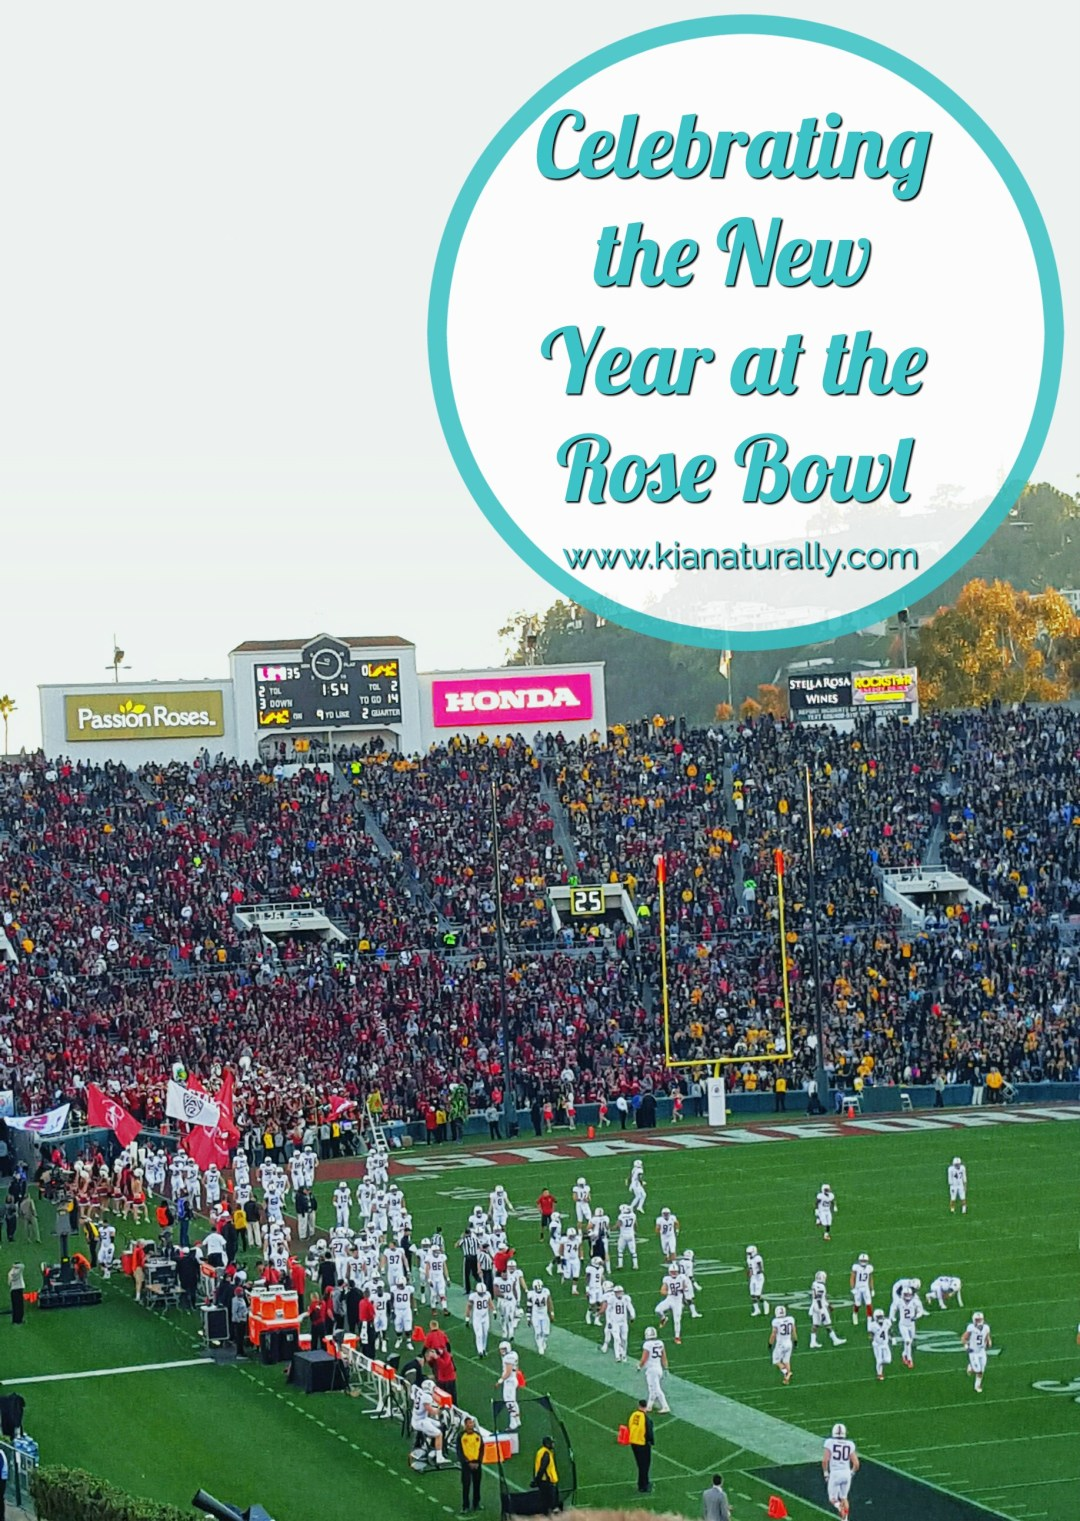 Celebrating the New Year at the Rose Bowl - www.kianaturally.com